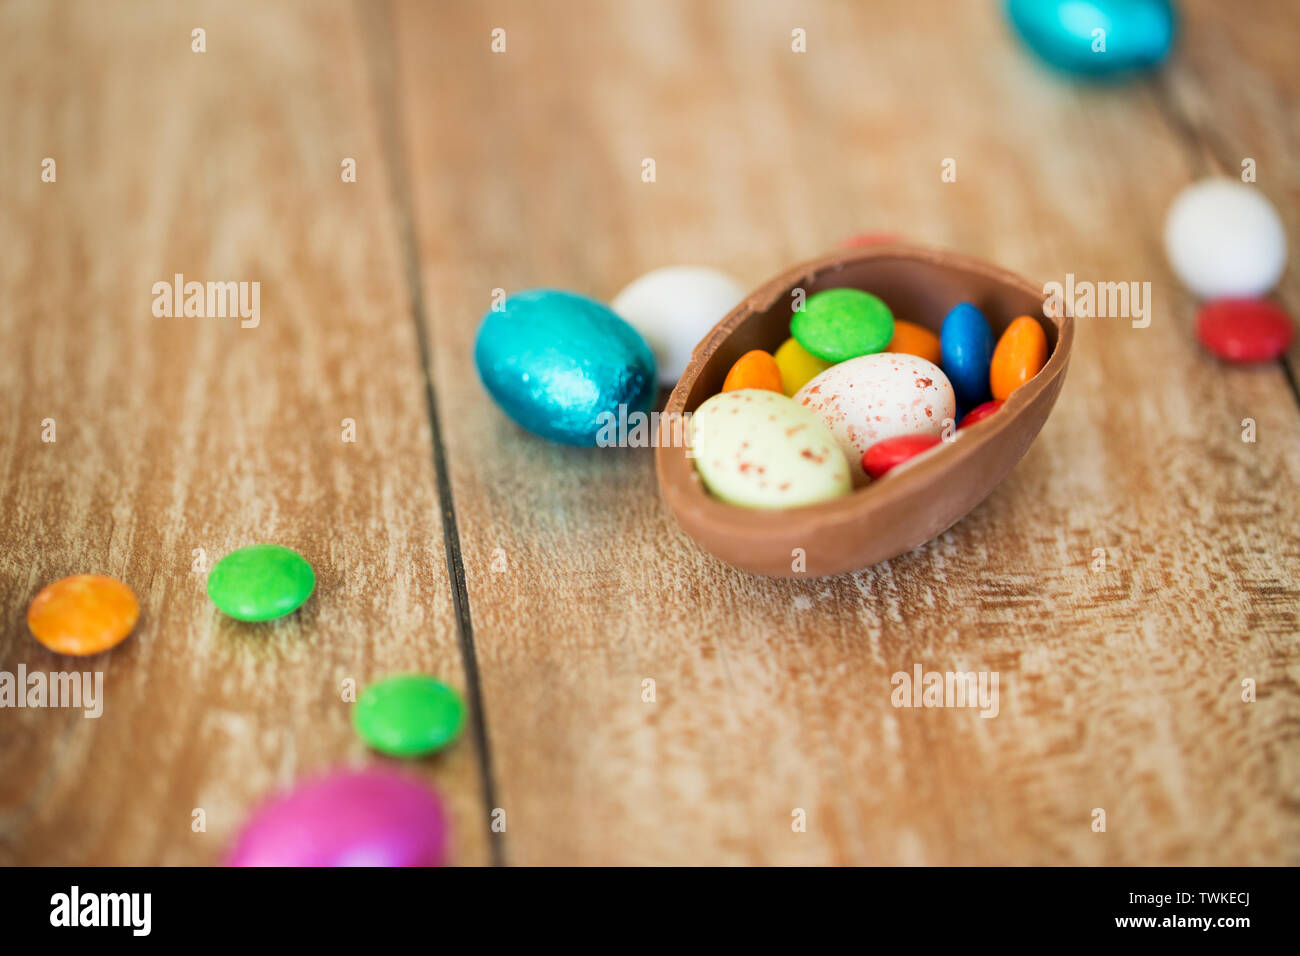 chocolate easter egg and candy drops on table - Stock Image